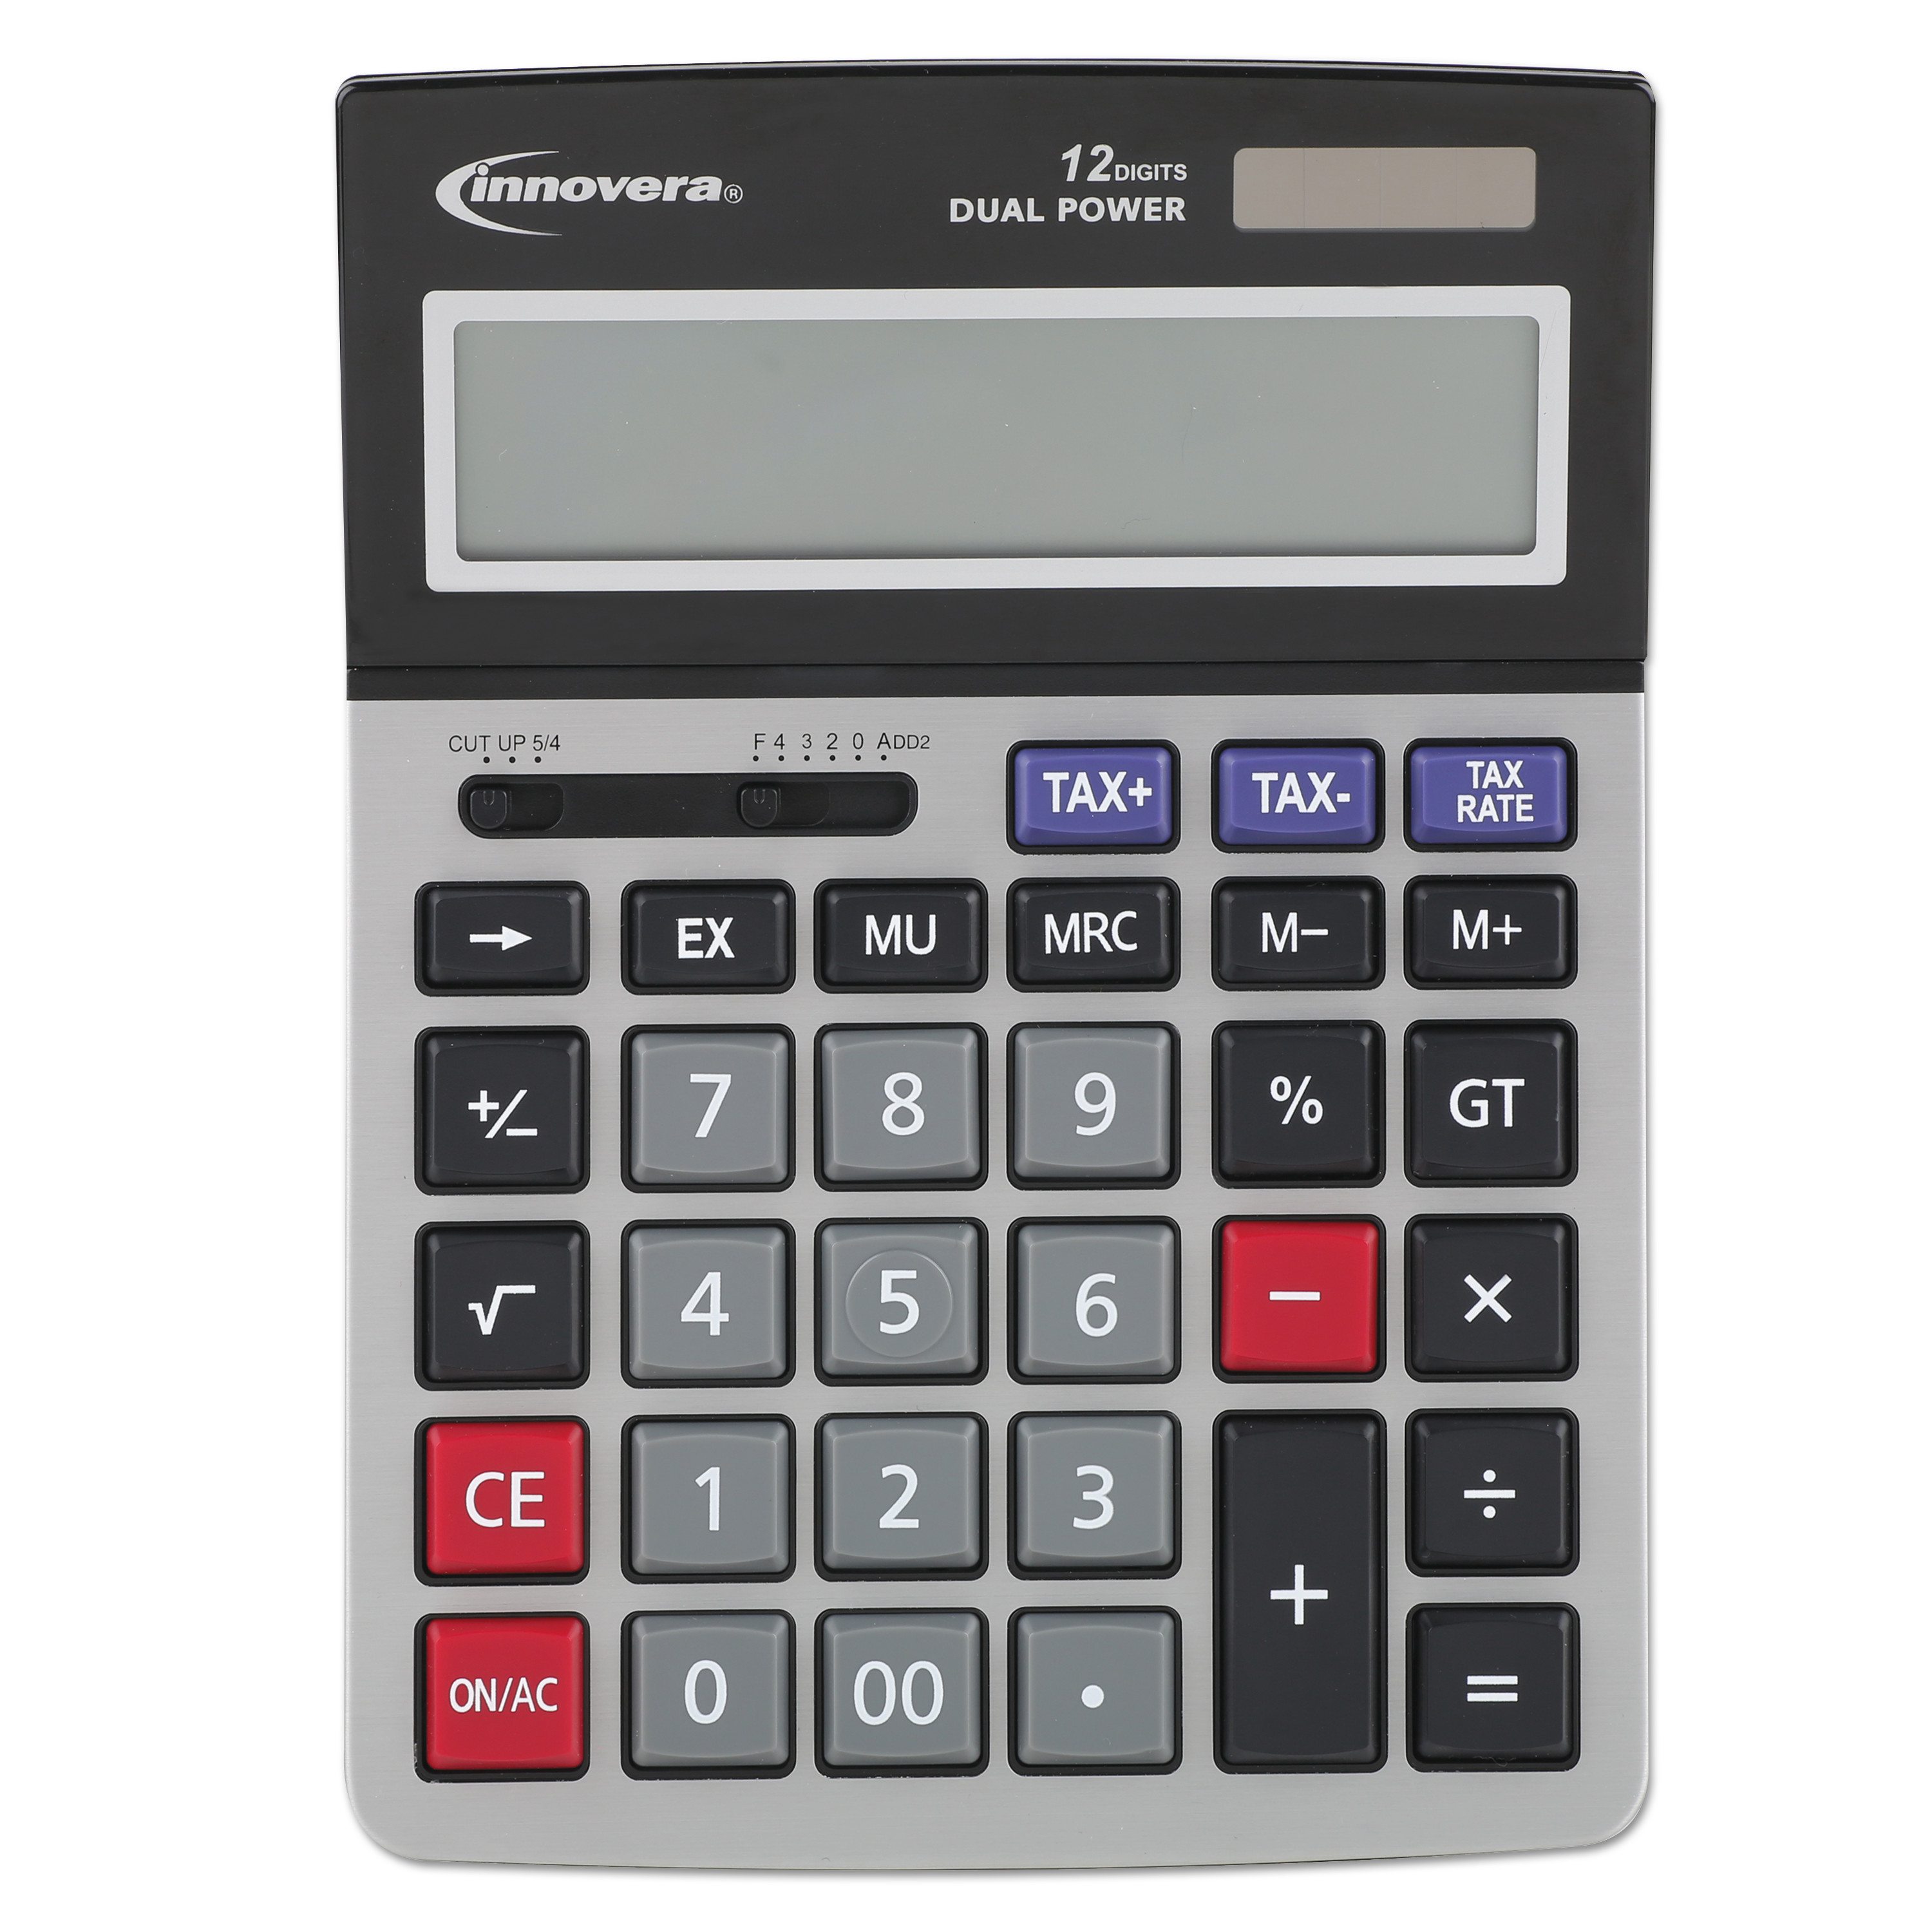 Innovera 15975 Large Digit Commercial Calculator, 12-Digit LCD